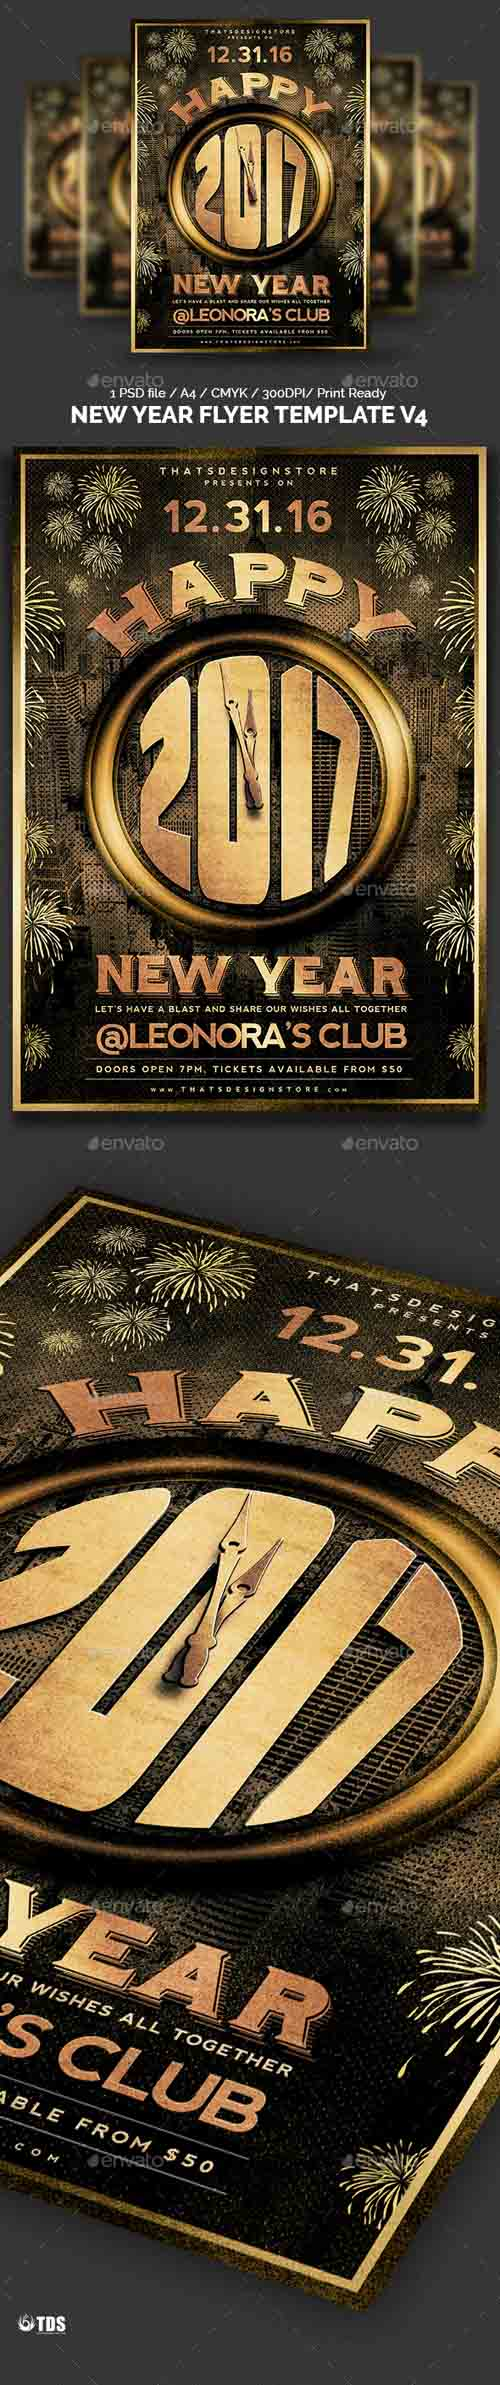 New Year Flyer Template V4 13503090